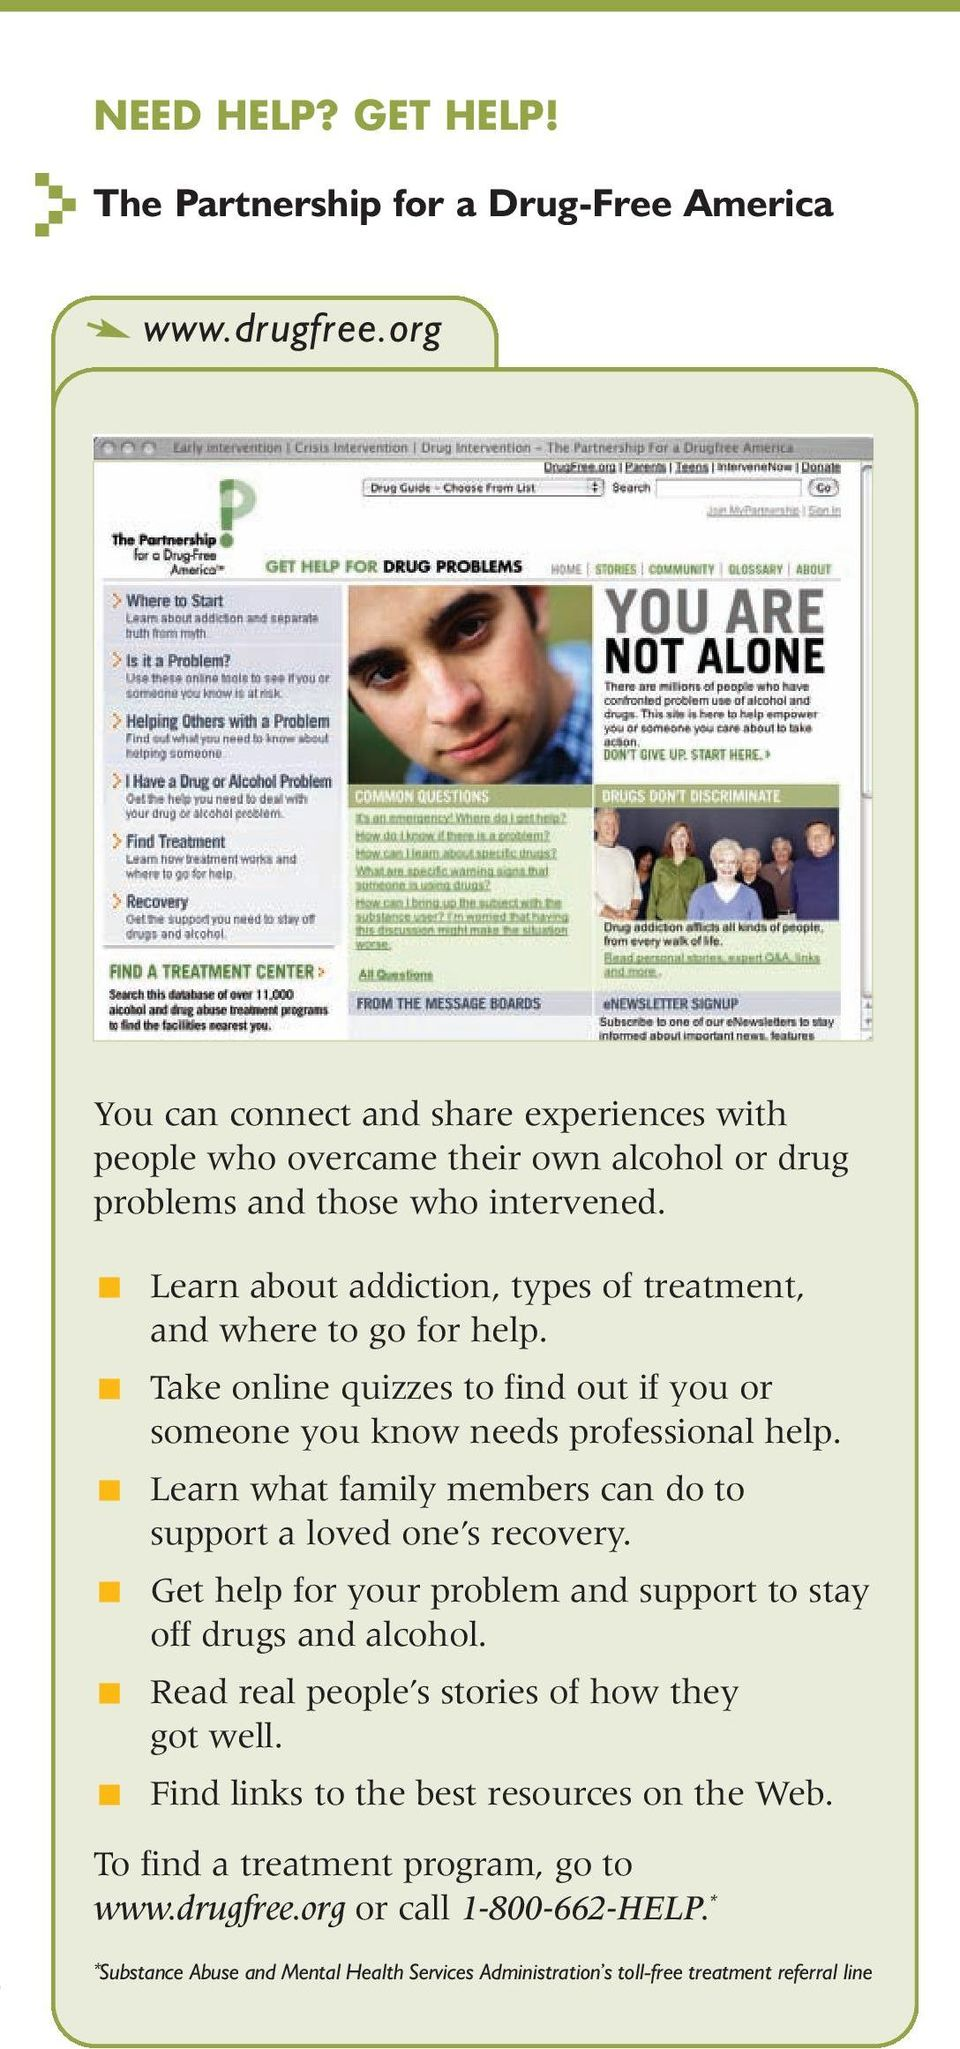 Learn about addiction, types of treatment, and where to go for help. Take online quizzes to find out if you or someone you know needs professional help.